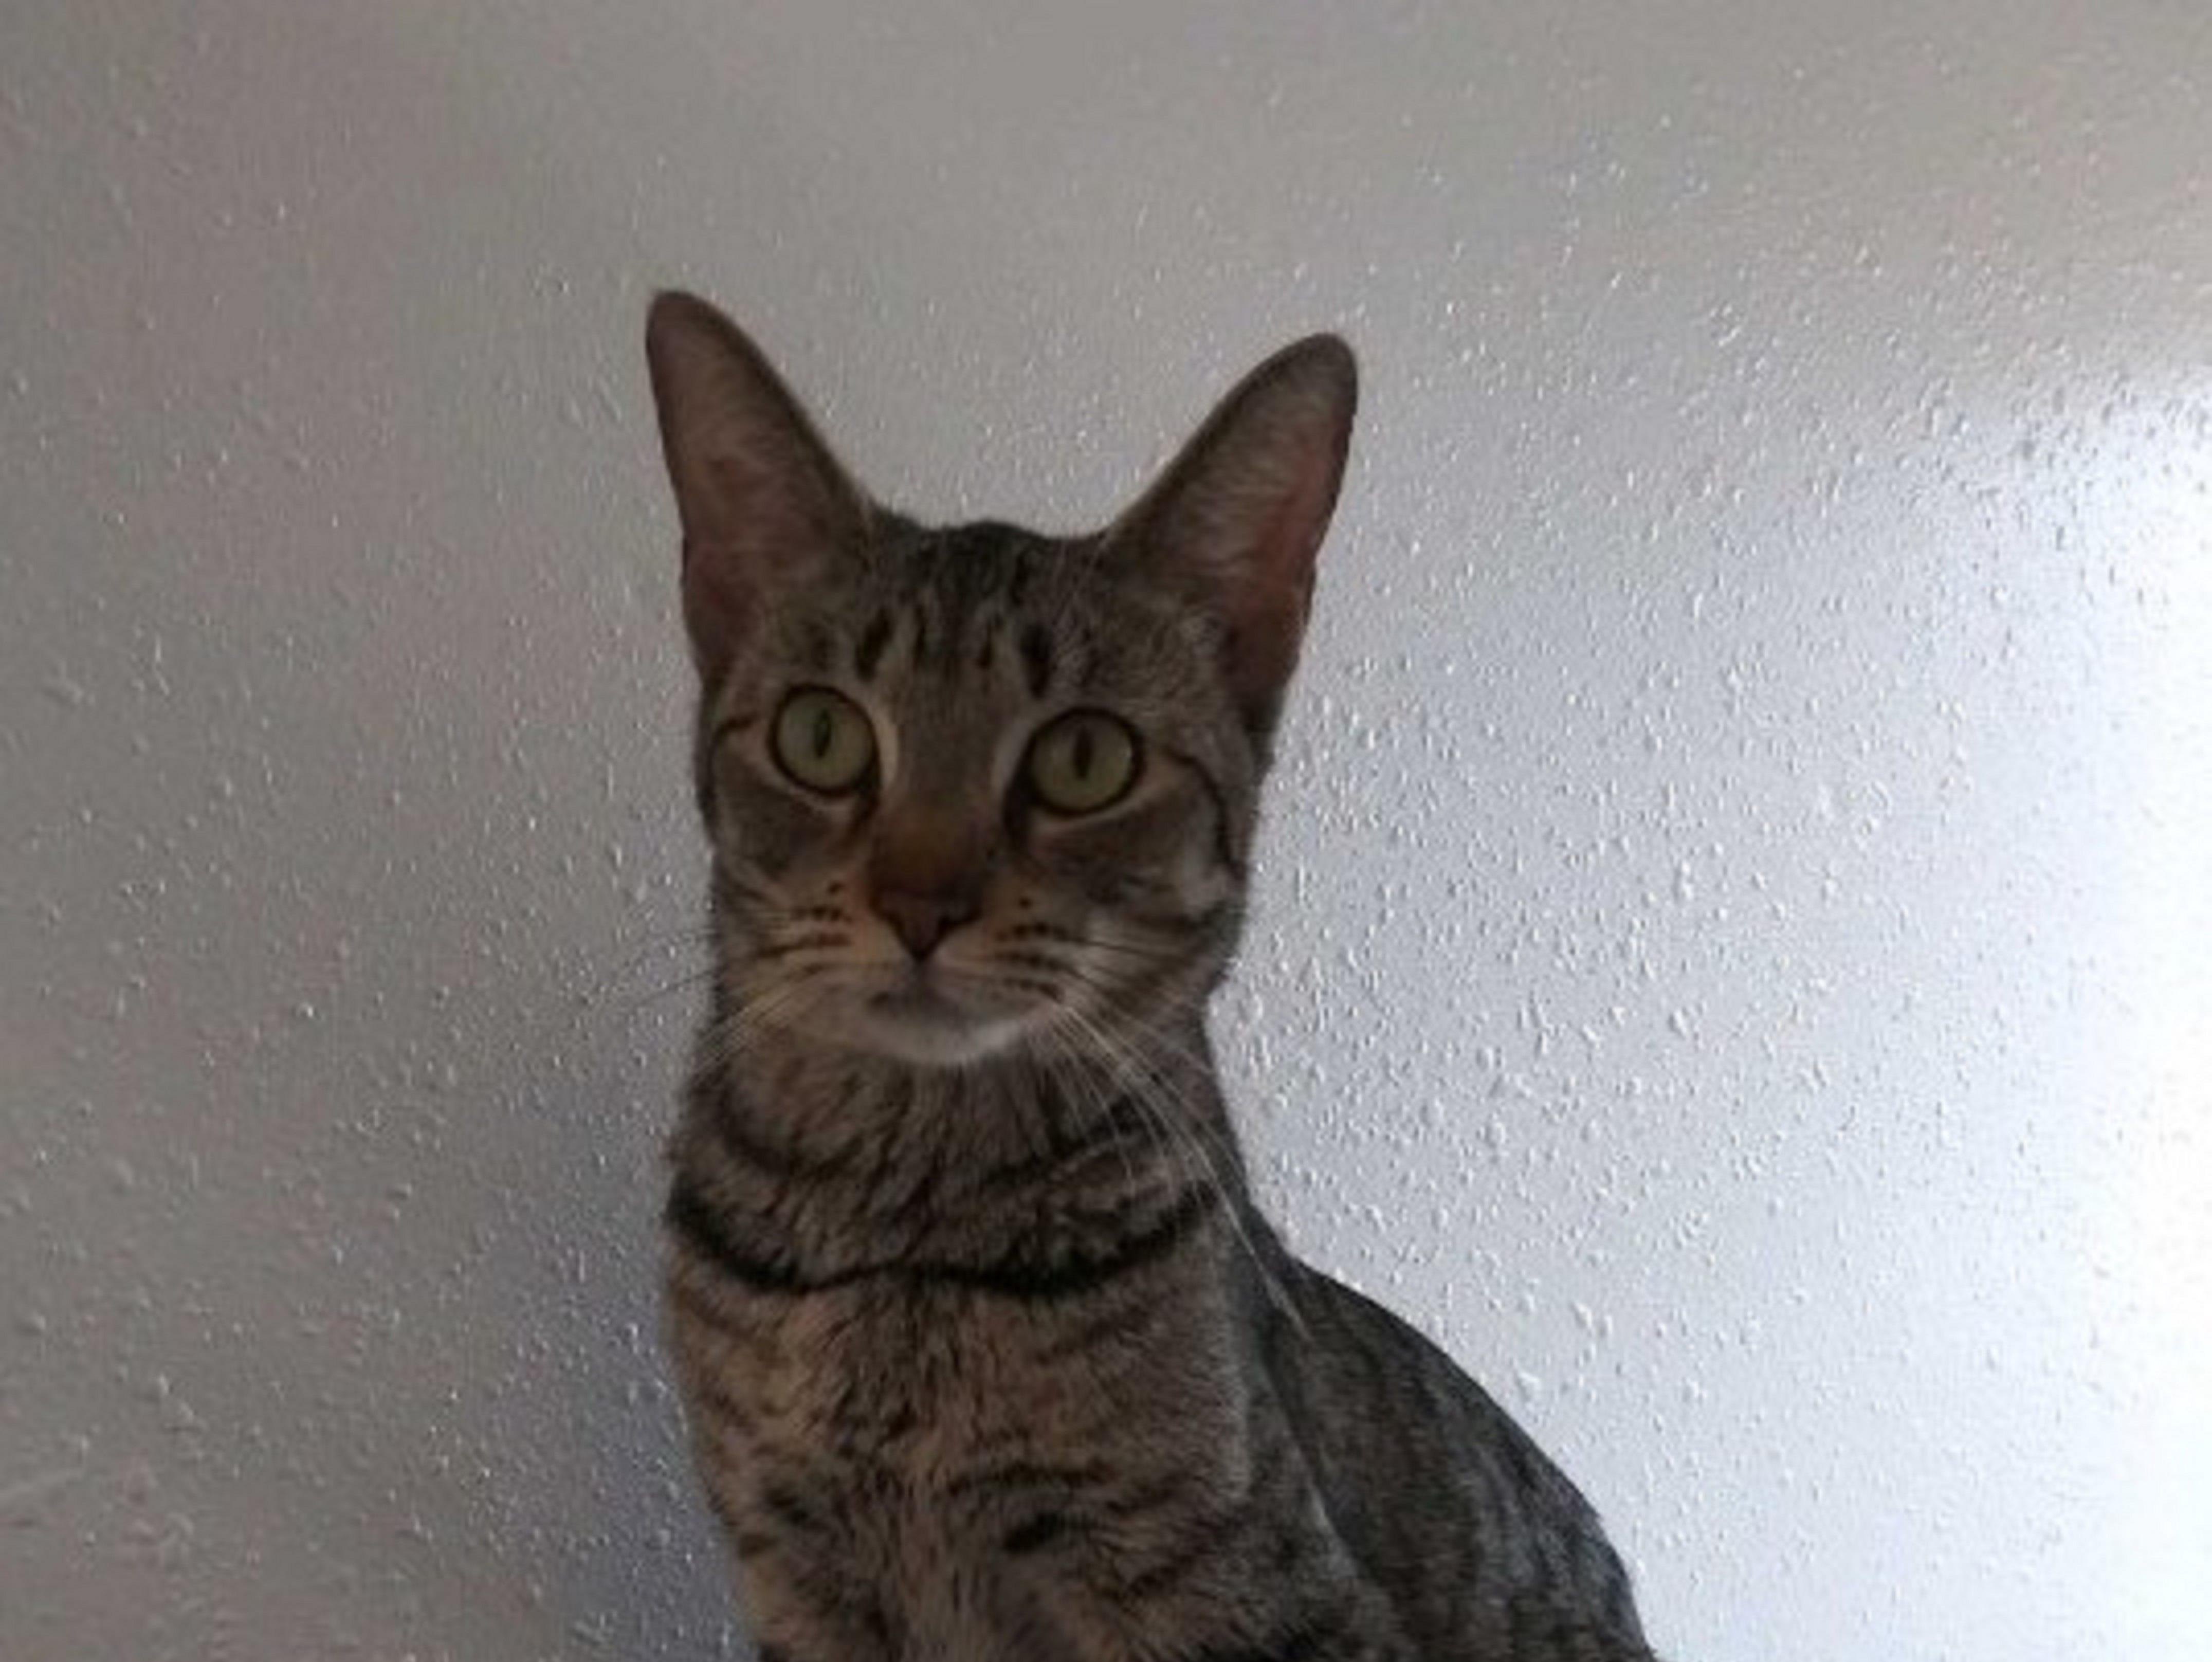 Ember is a sweet, friendly, female, domestic short-haired cat with spotted and striped markings. She gets along with just about everyone who is friendly to her. Raining Cats N Dogs adoptions include spay/neuter services, vaccines and vetting as needed. Call 232-6299. Go to http://rainingcatsndogs.rescuegroups.org.